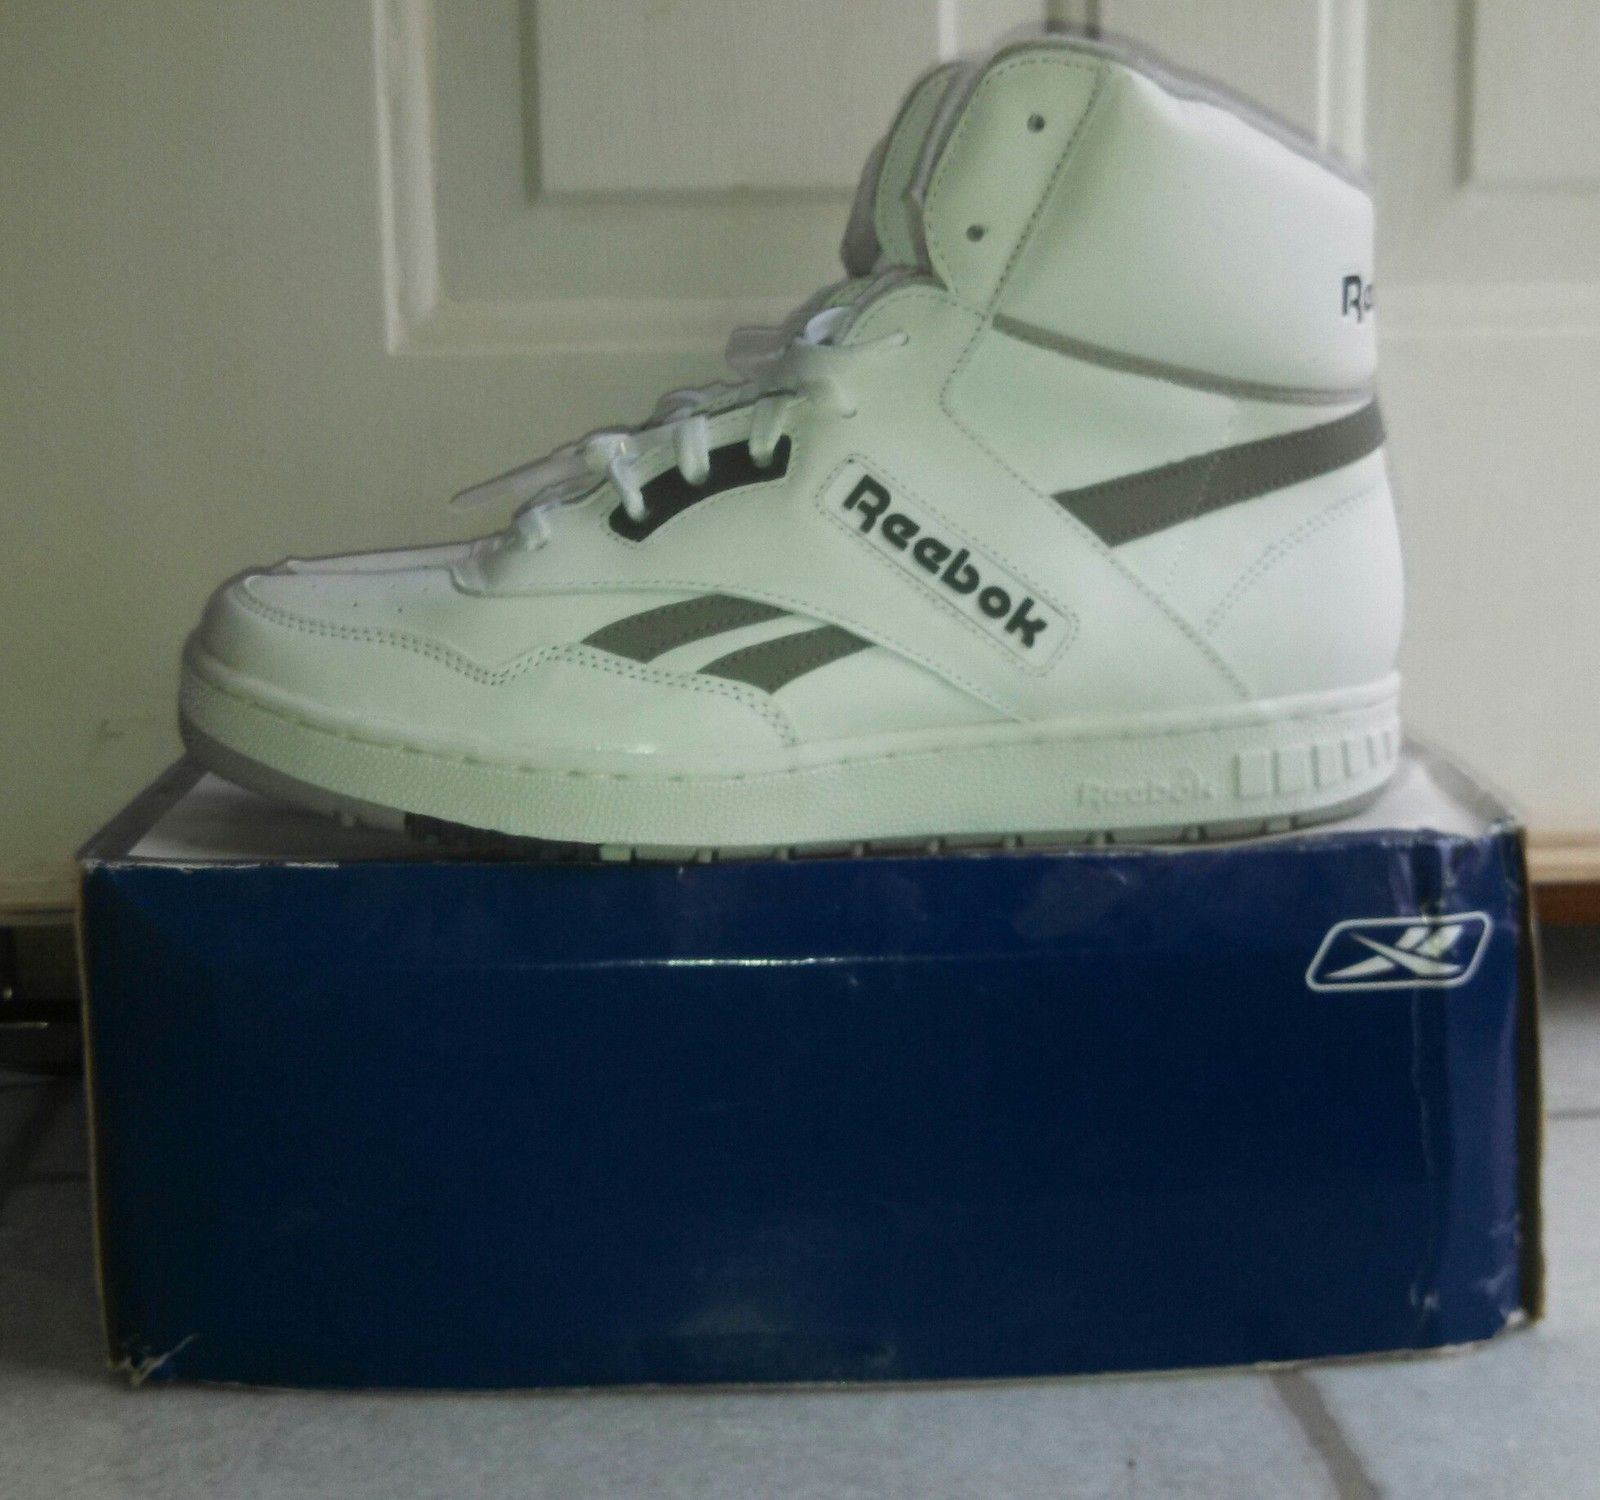 415890c965 Rare New In Box Reebok BB4600 Mens Vintage White Hi Top Basketball ...